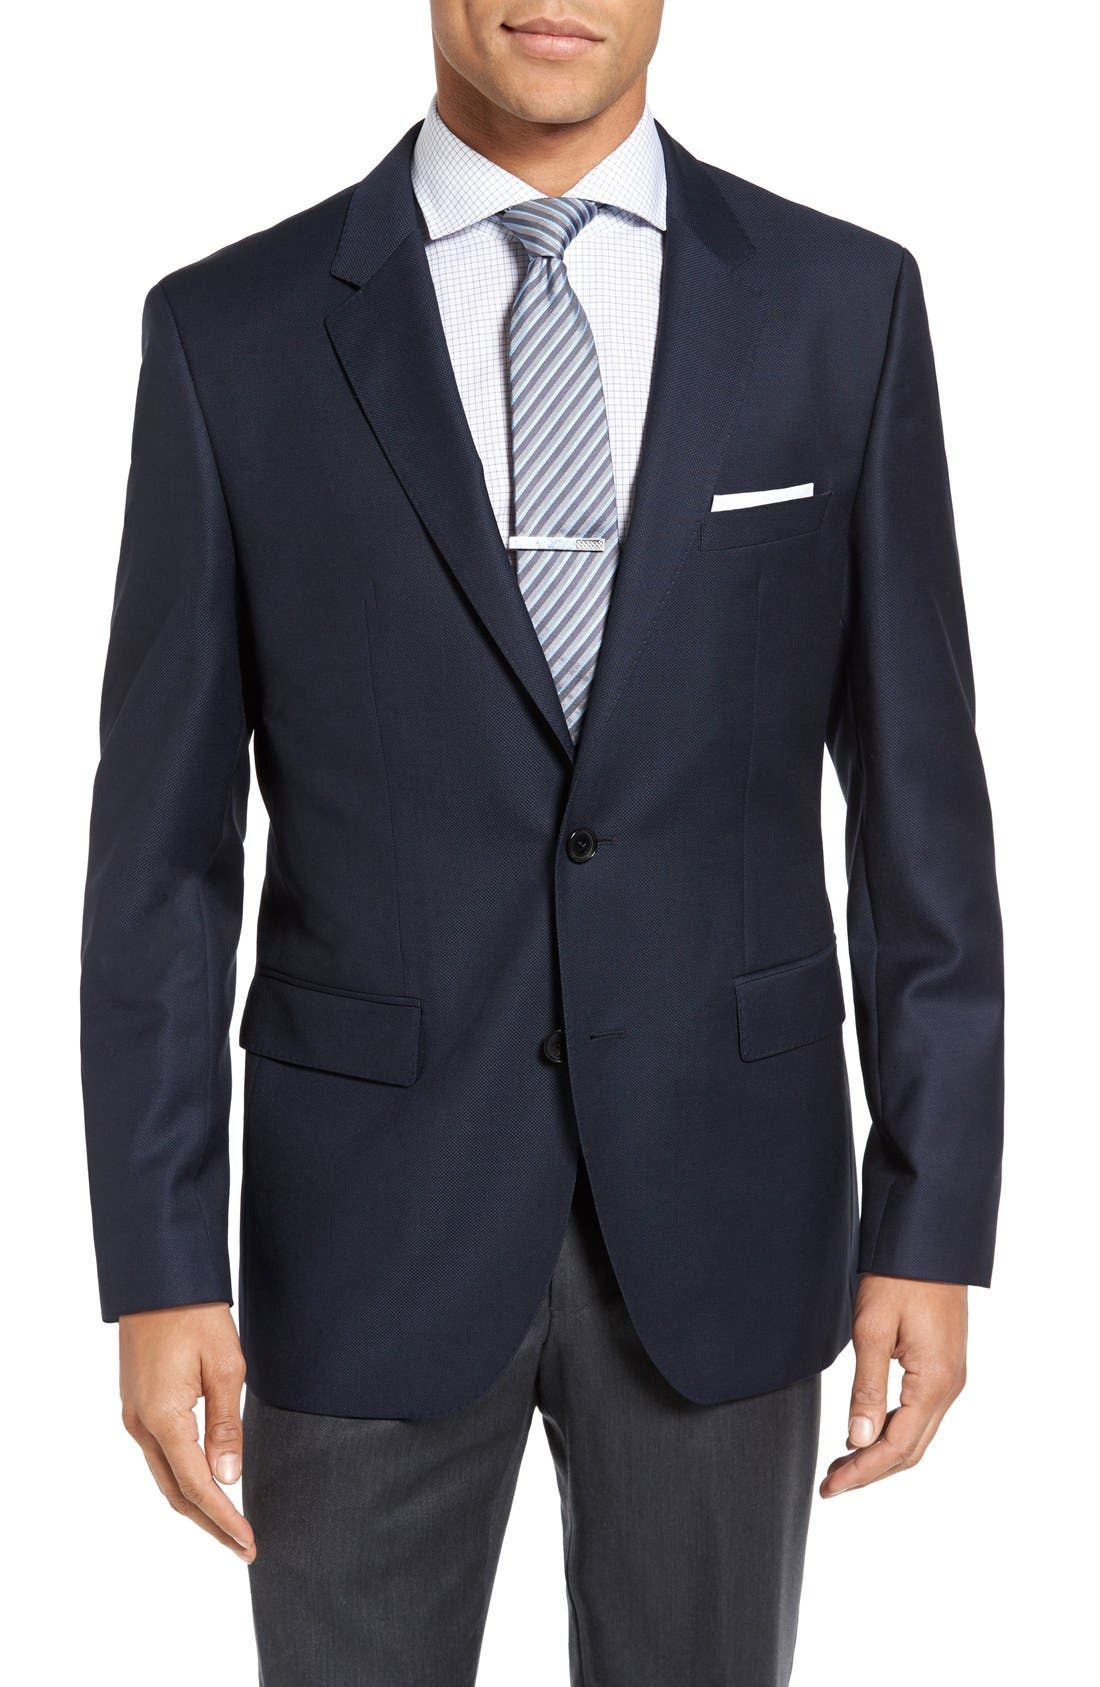 James Classic Fit Wool Blazer,                             Main thumbnail 1, color,                             410